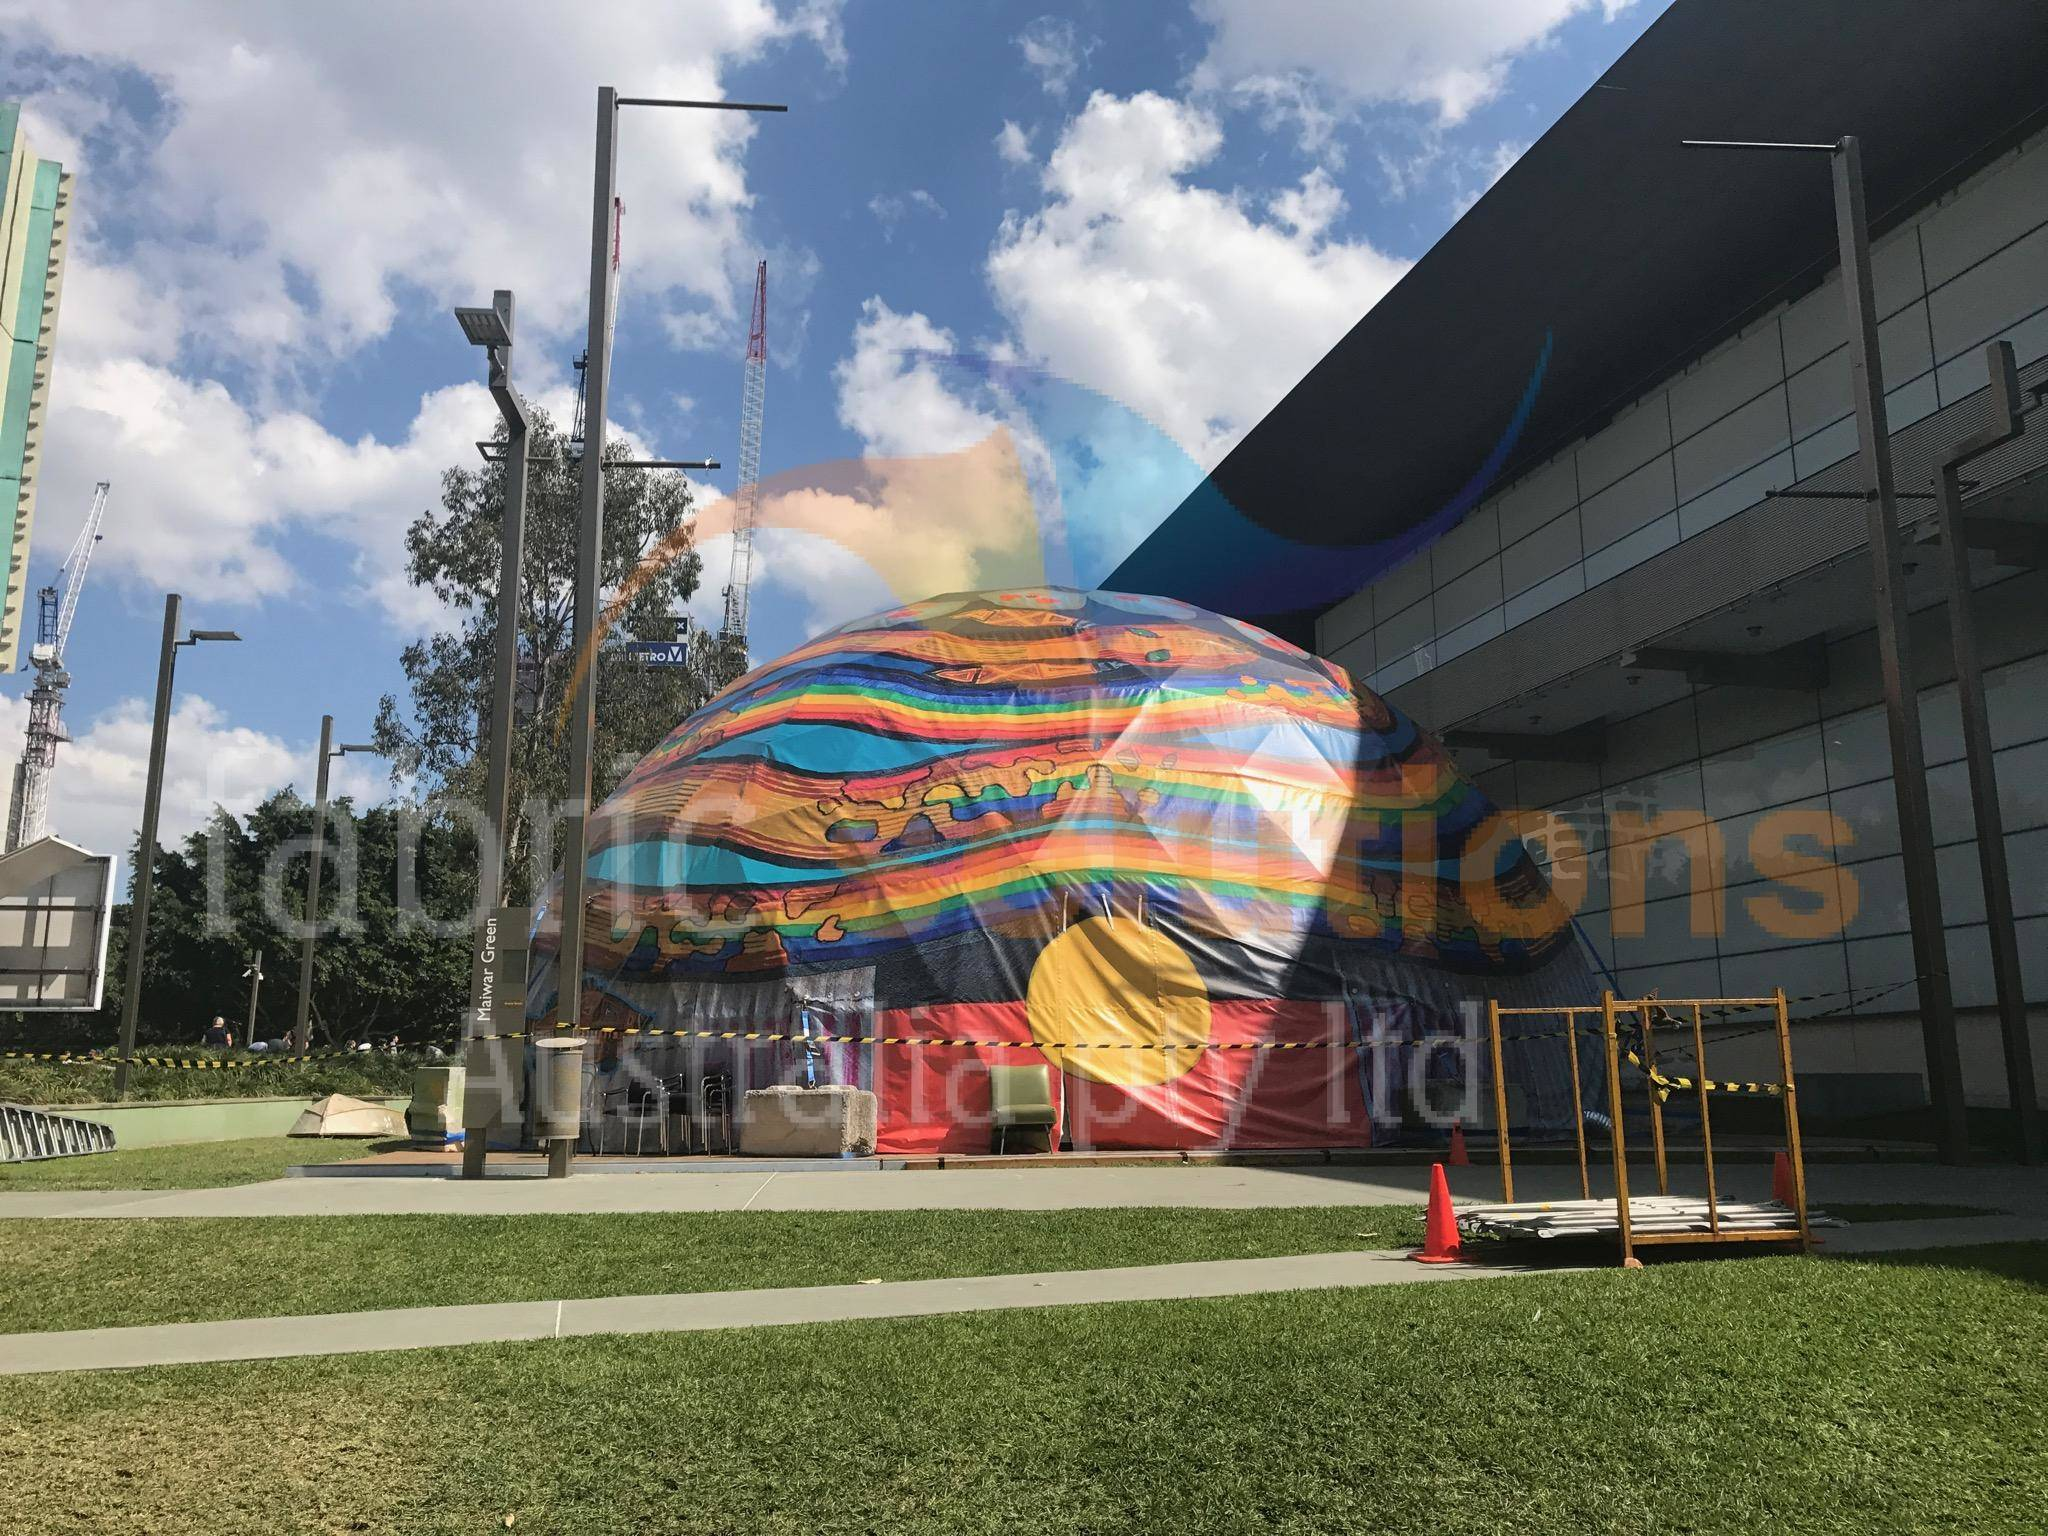 outside the geodesic dome for the Brisbane Writers Festival, 2017